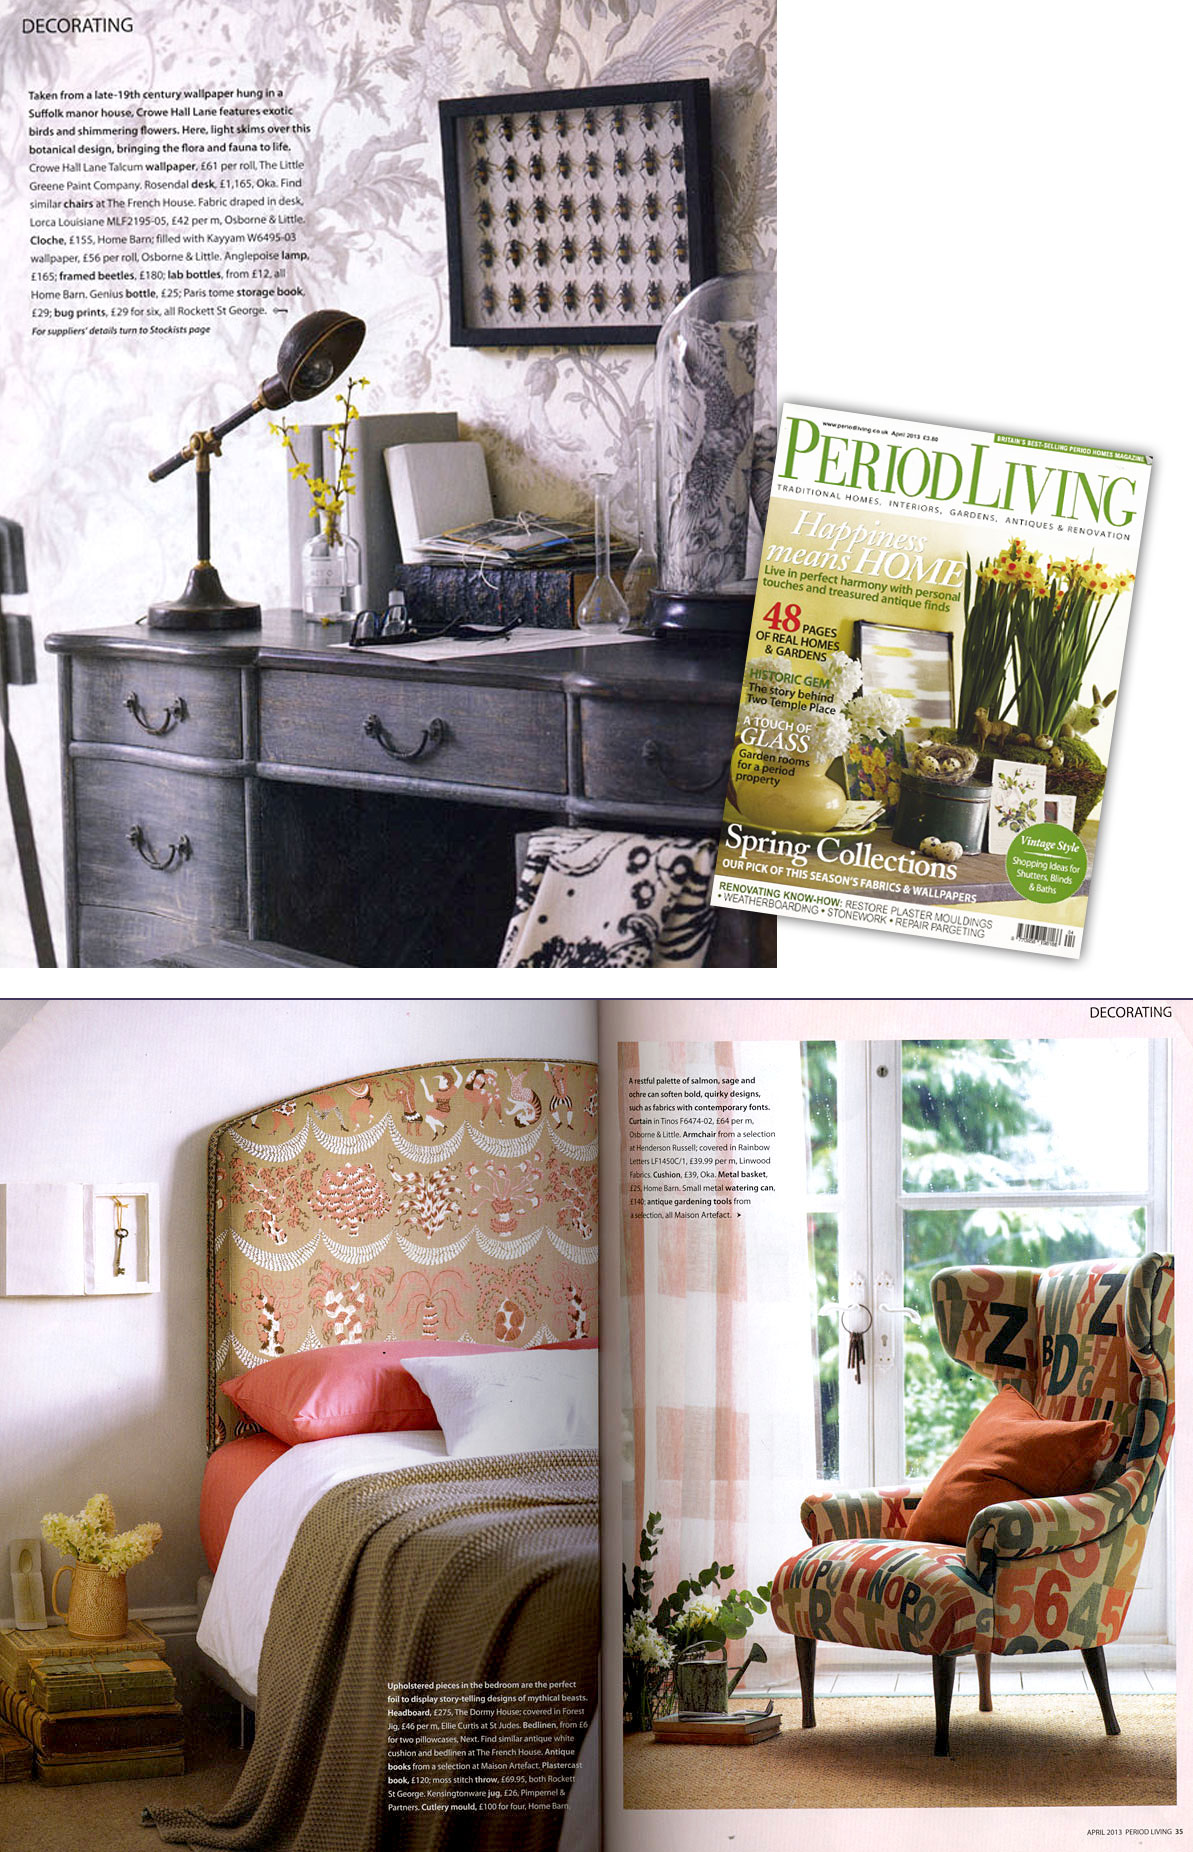 press home barn vintage country homes and interiors magazine period living magazine financial times